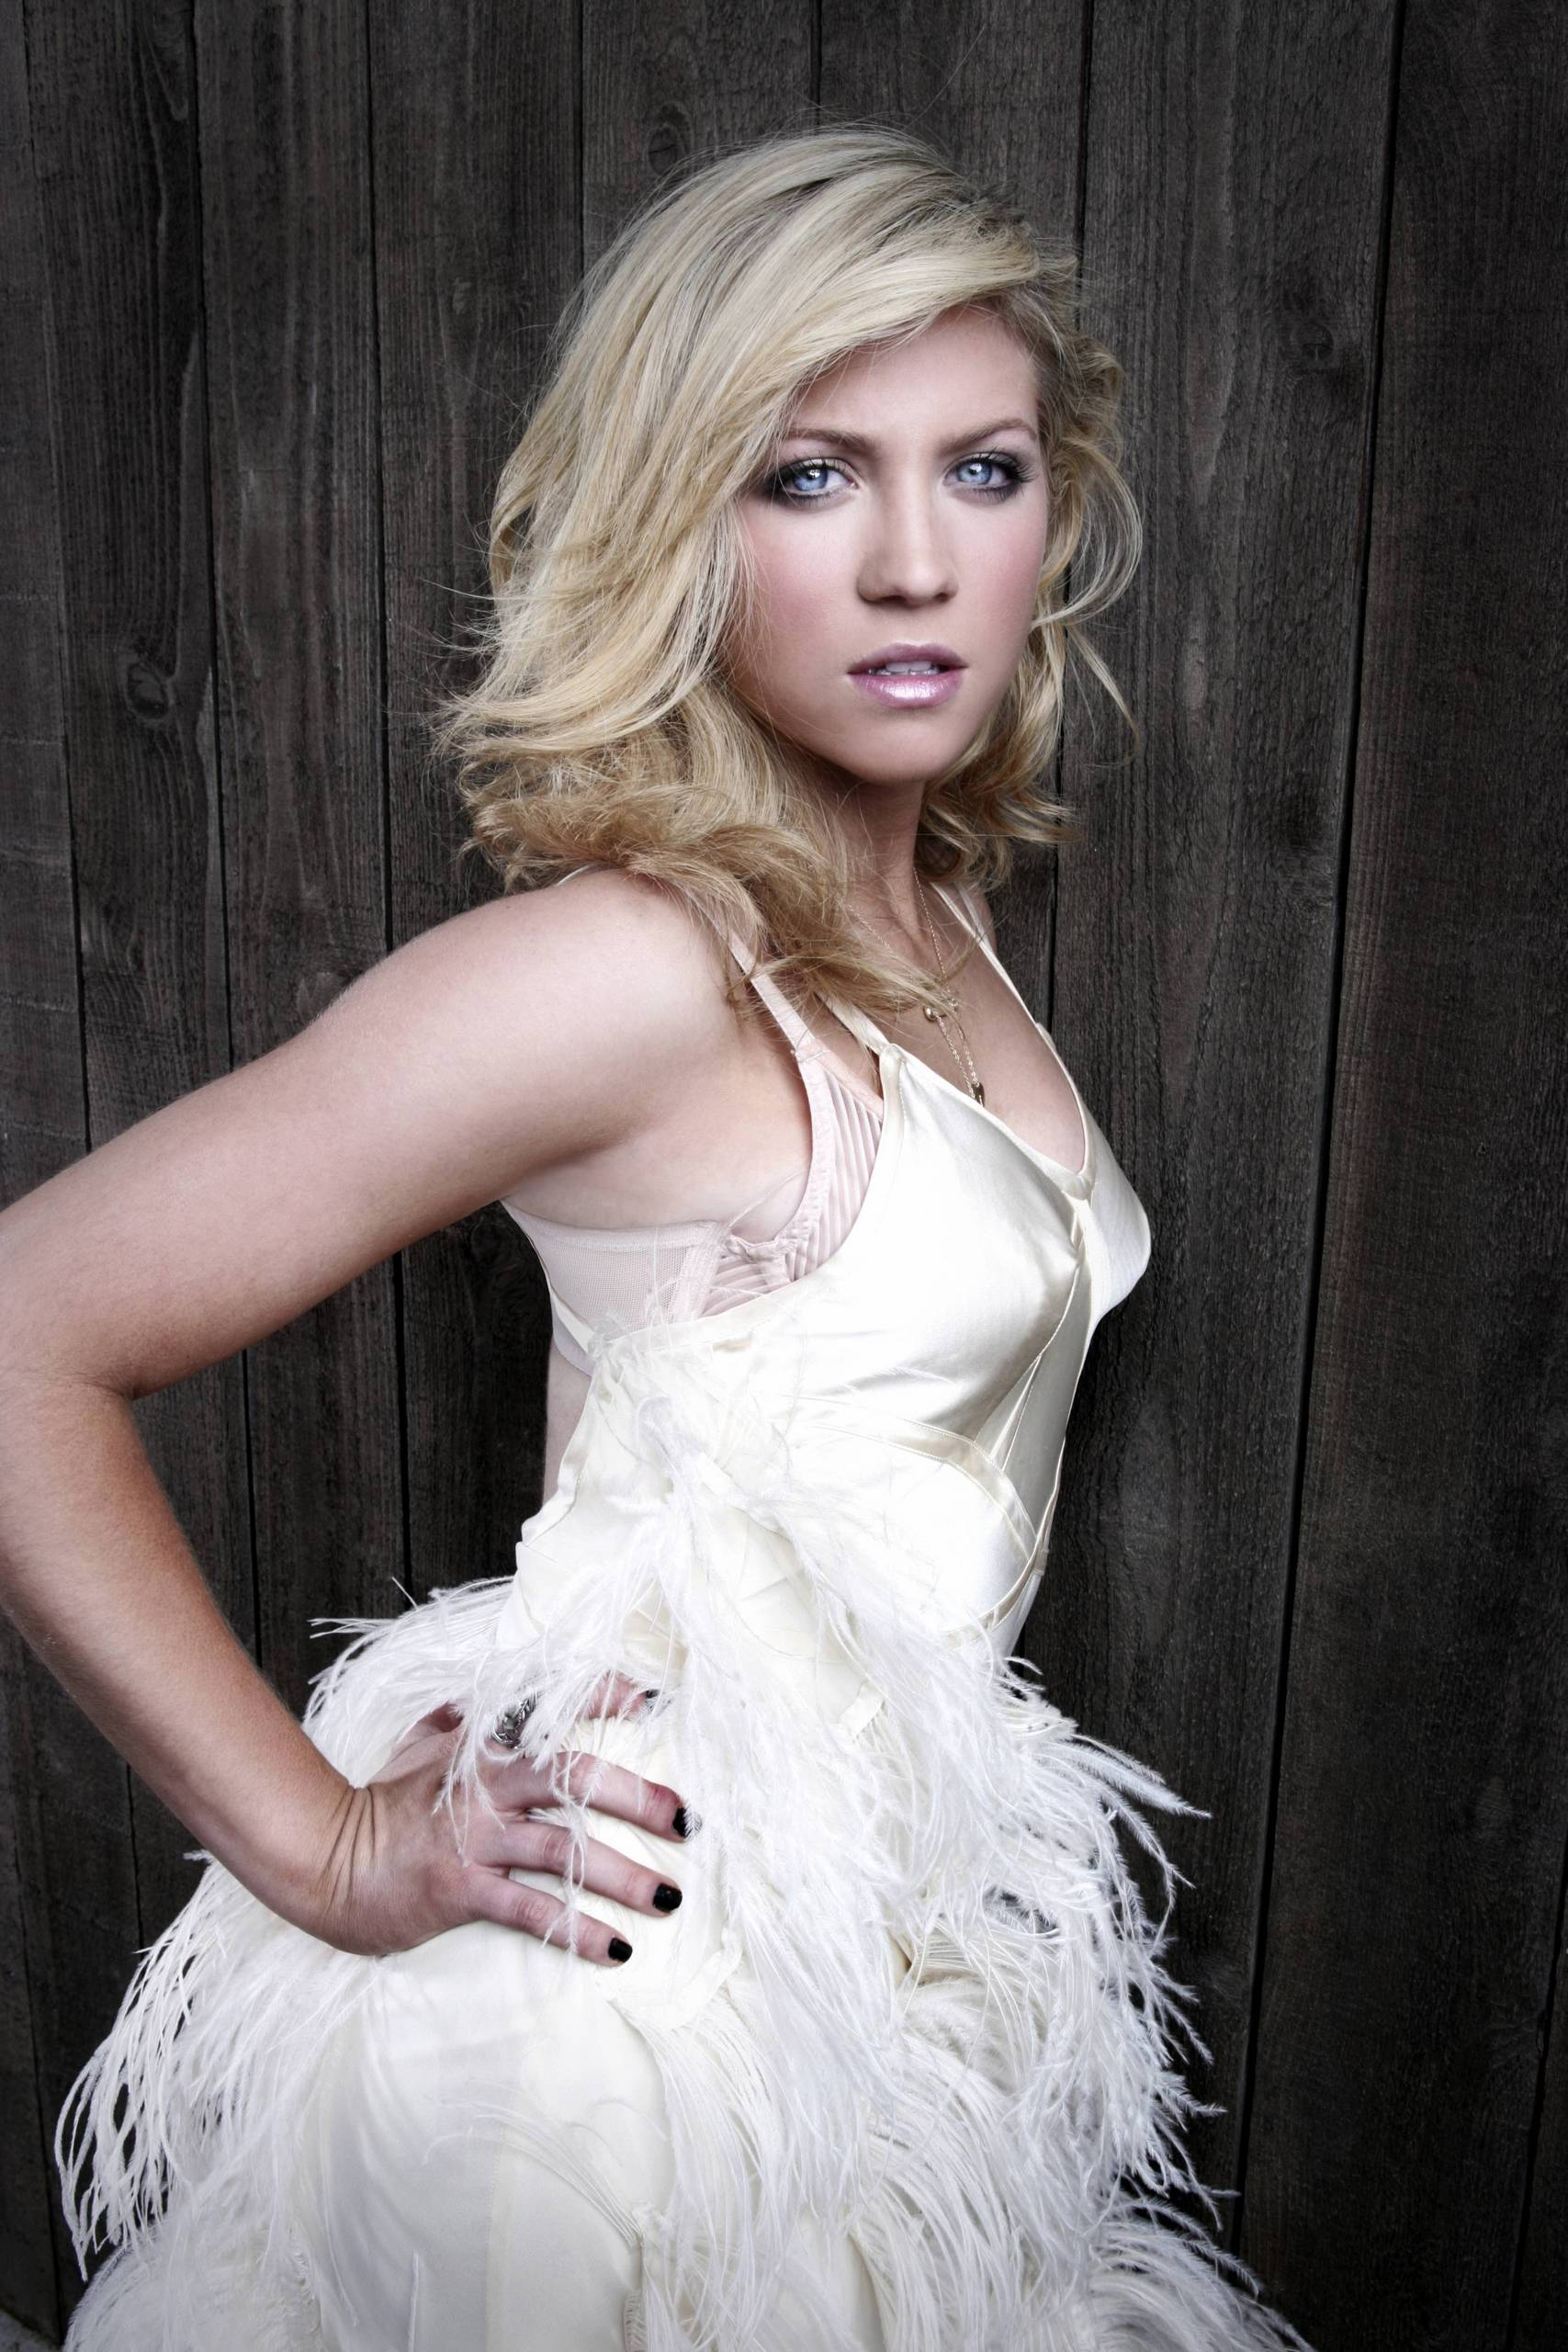 Brittany Snow For mobile